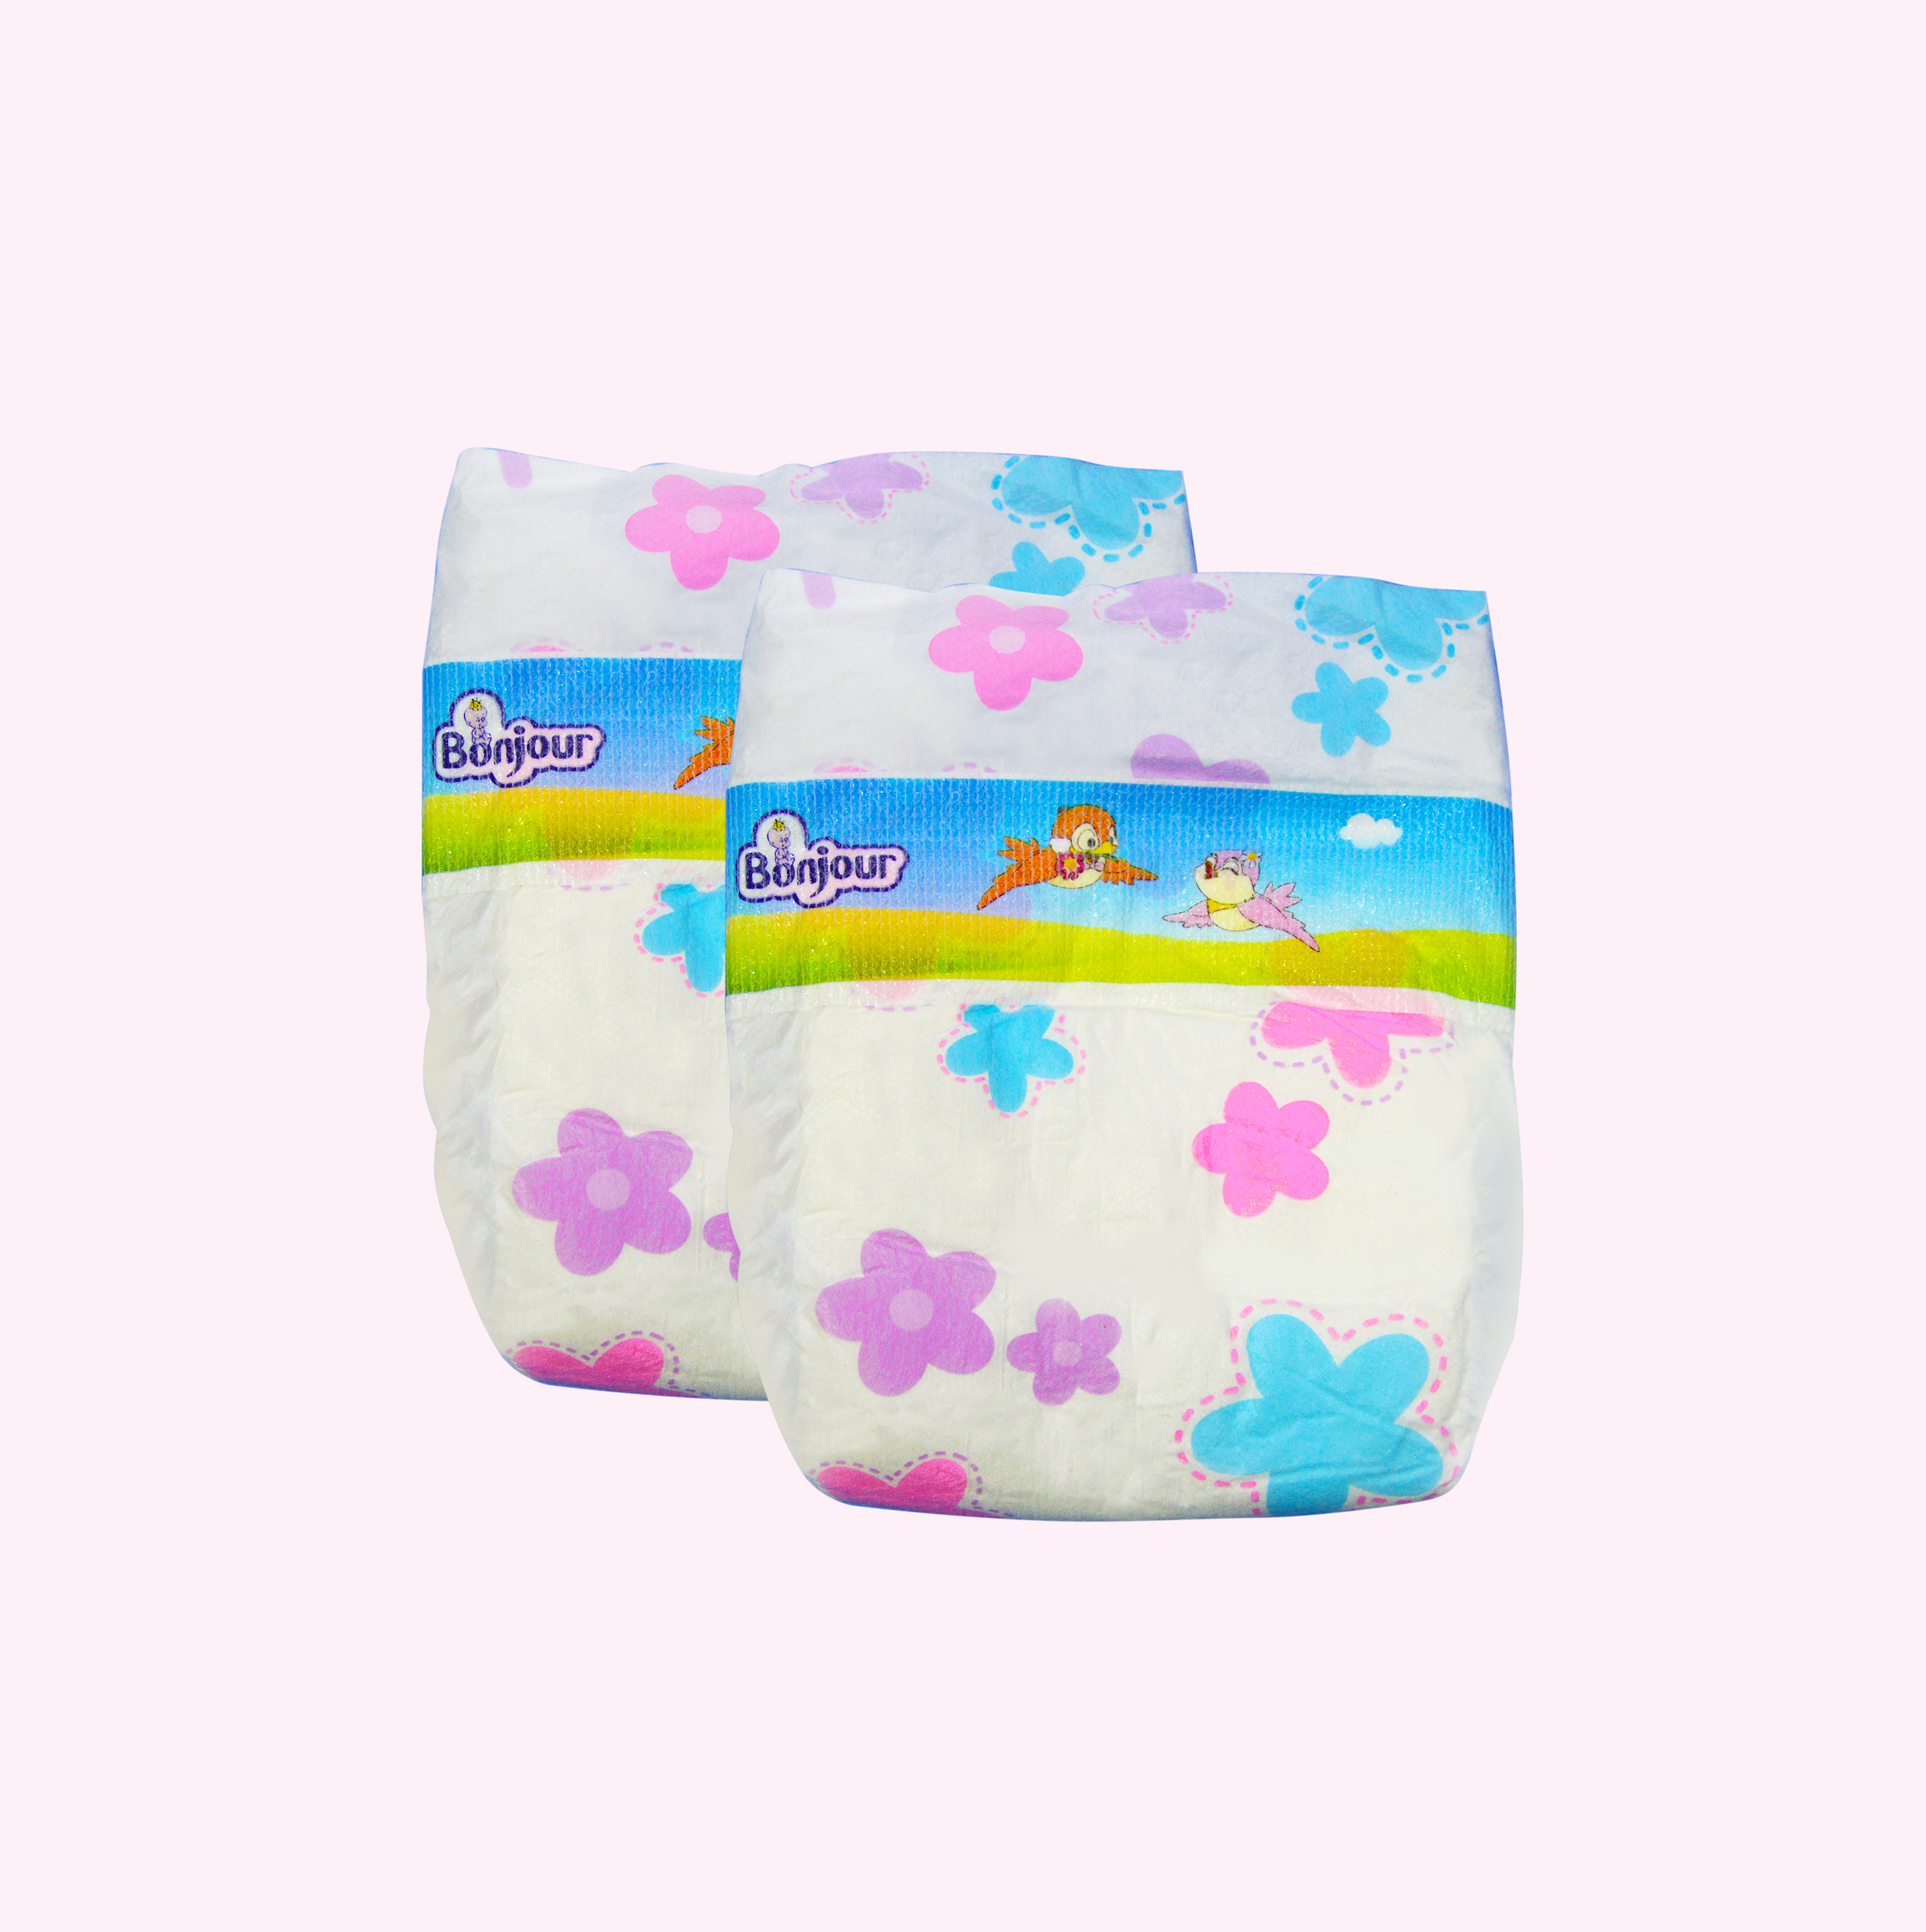 Bonjour baby diaper high quality in Africa baby cloth diaper